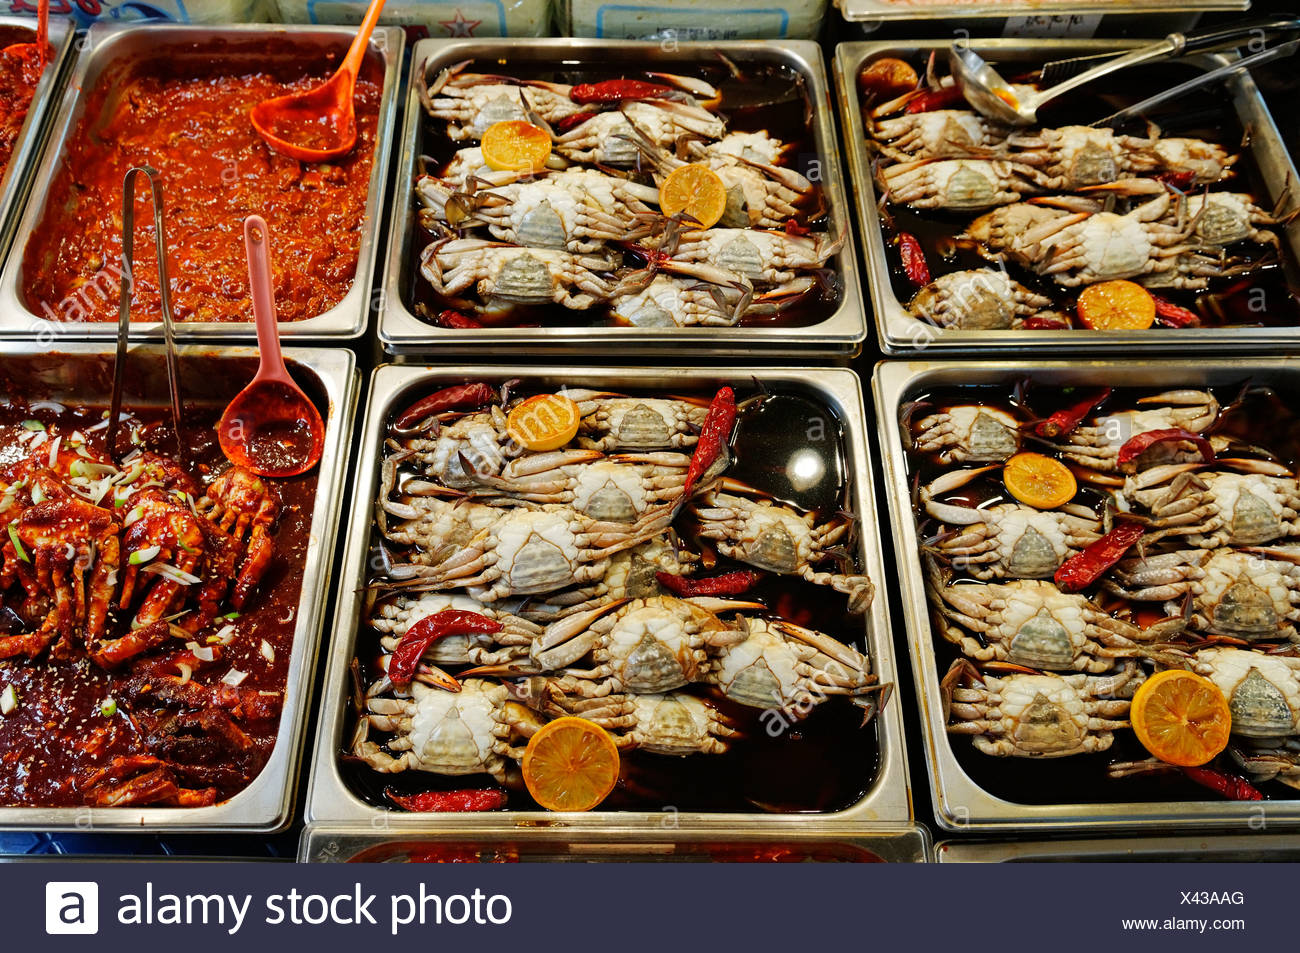 Korean food, cooked crabs, seafood at a market in Seoul, South Korea, Asia Stock Photo